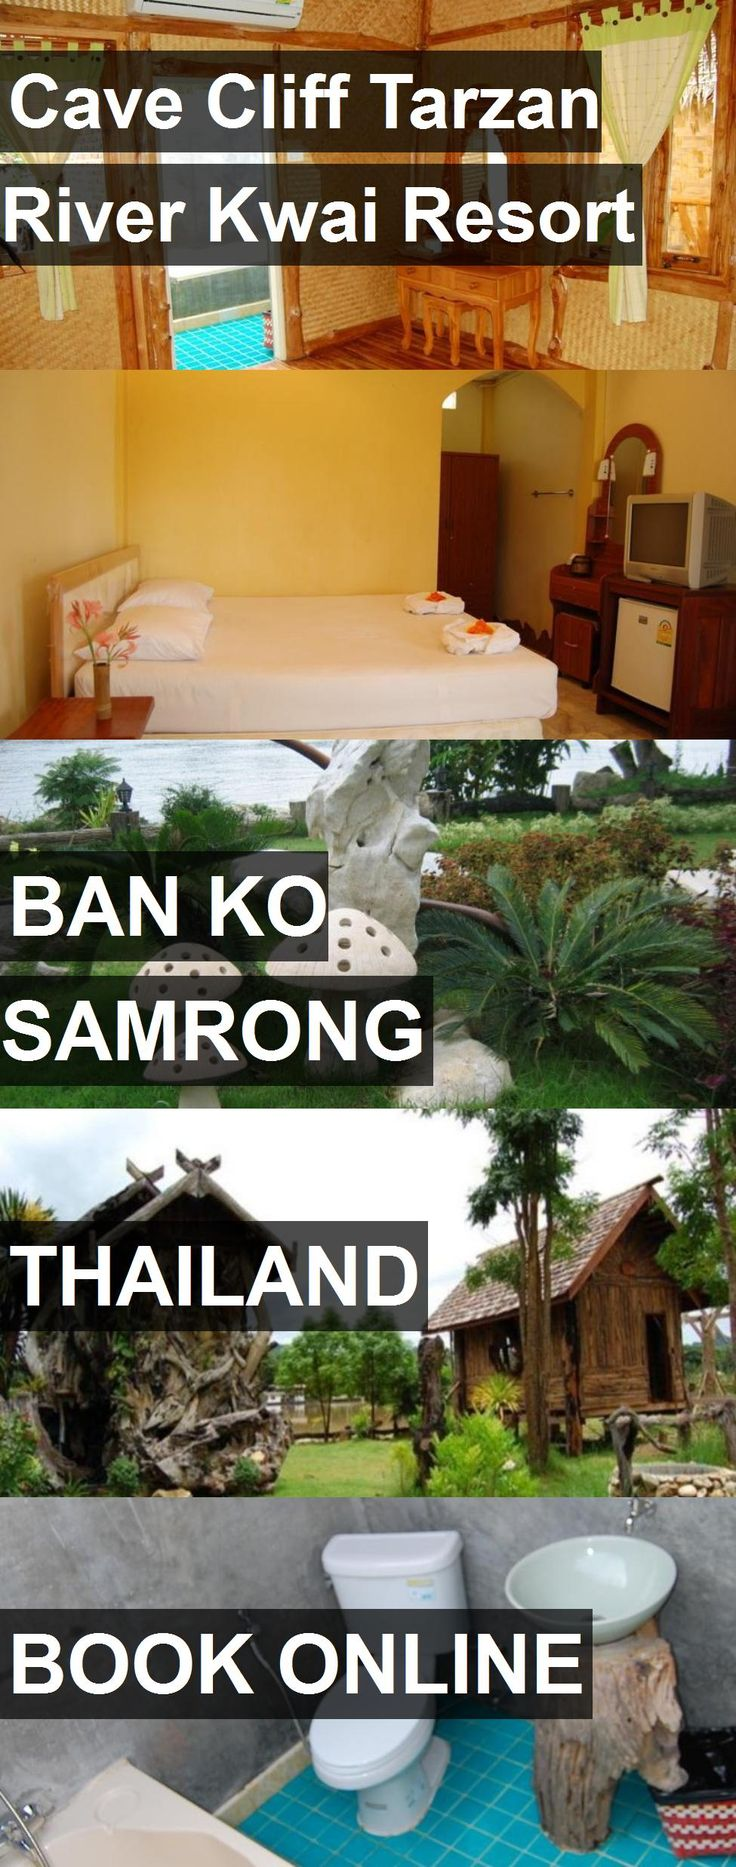 Hotel Cave Cliff Tarzan River Kwai Resort in Ban Ko Samrong, Thailand. For more information, photos, reviews and best prices please follow the link. #Thailand #BanKoSamrong #CaveCliffTarzanRiverKwaiResort #hotel #travel #vacation